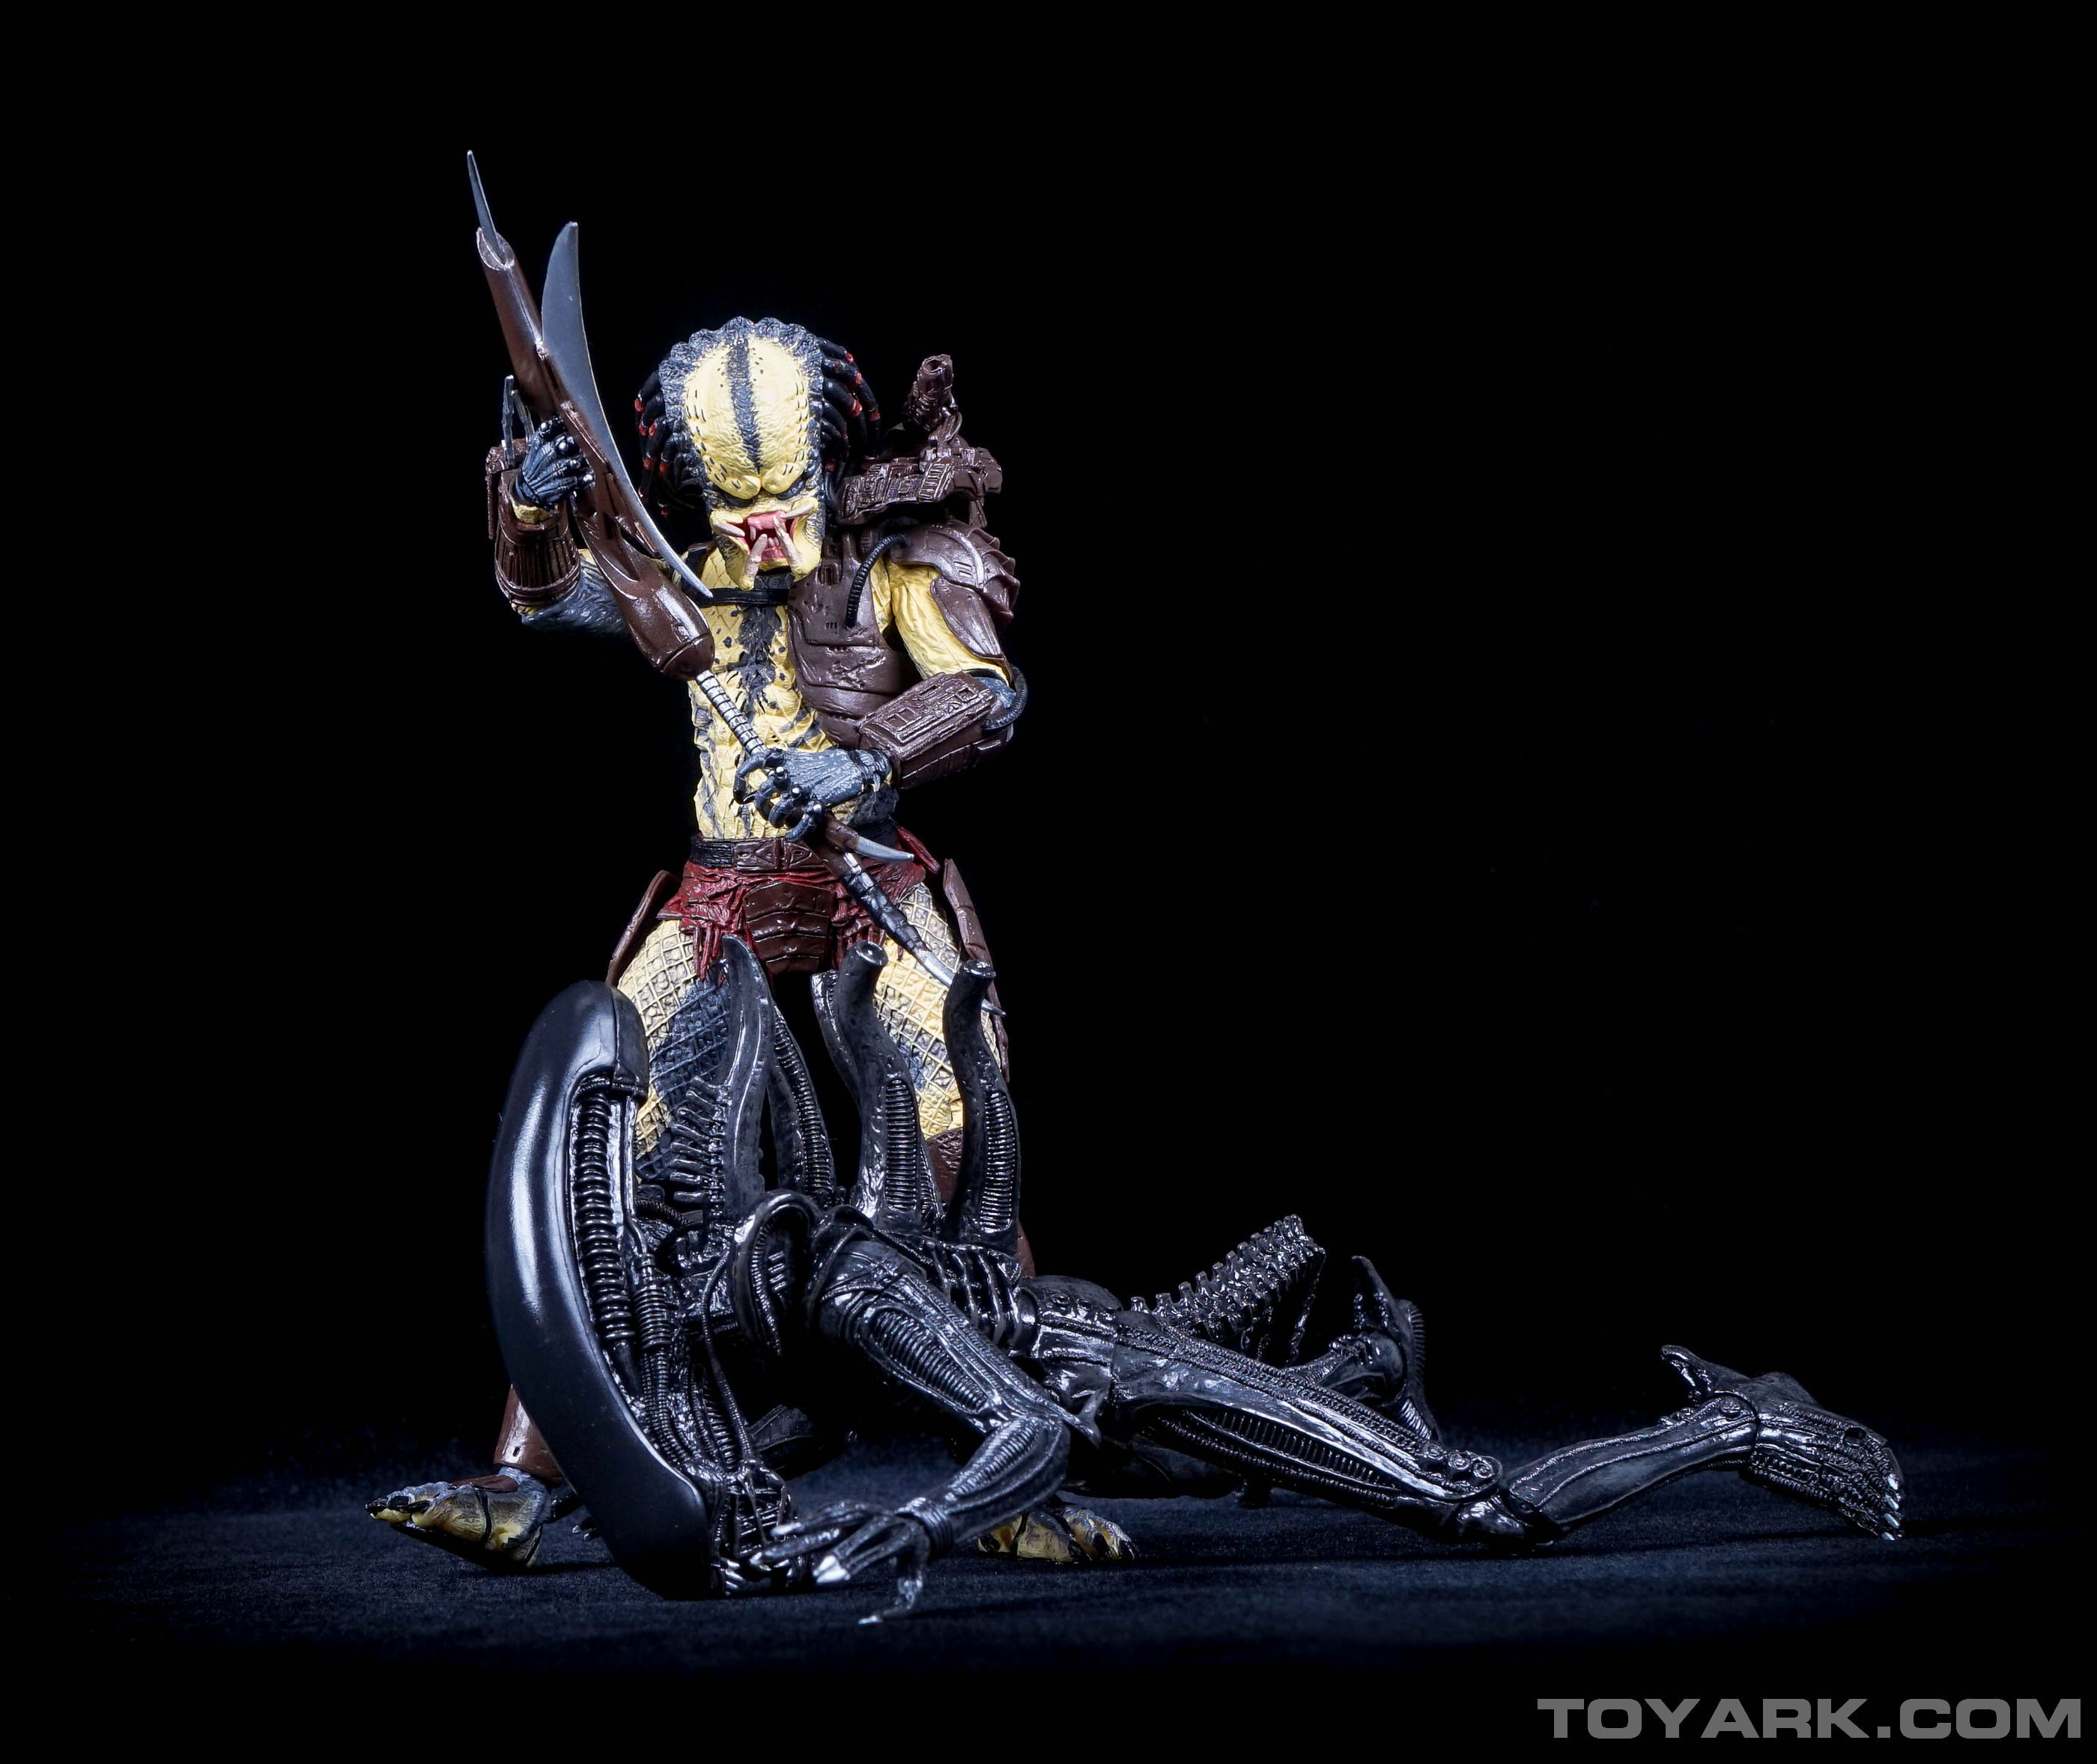 http://news.toyark.com/wp-content/uploads/sites/4/2015/08/TRU-Alien-vs-Predaator-Exclusive-060.jpg